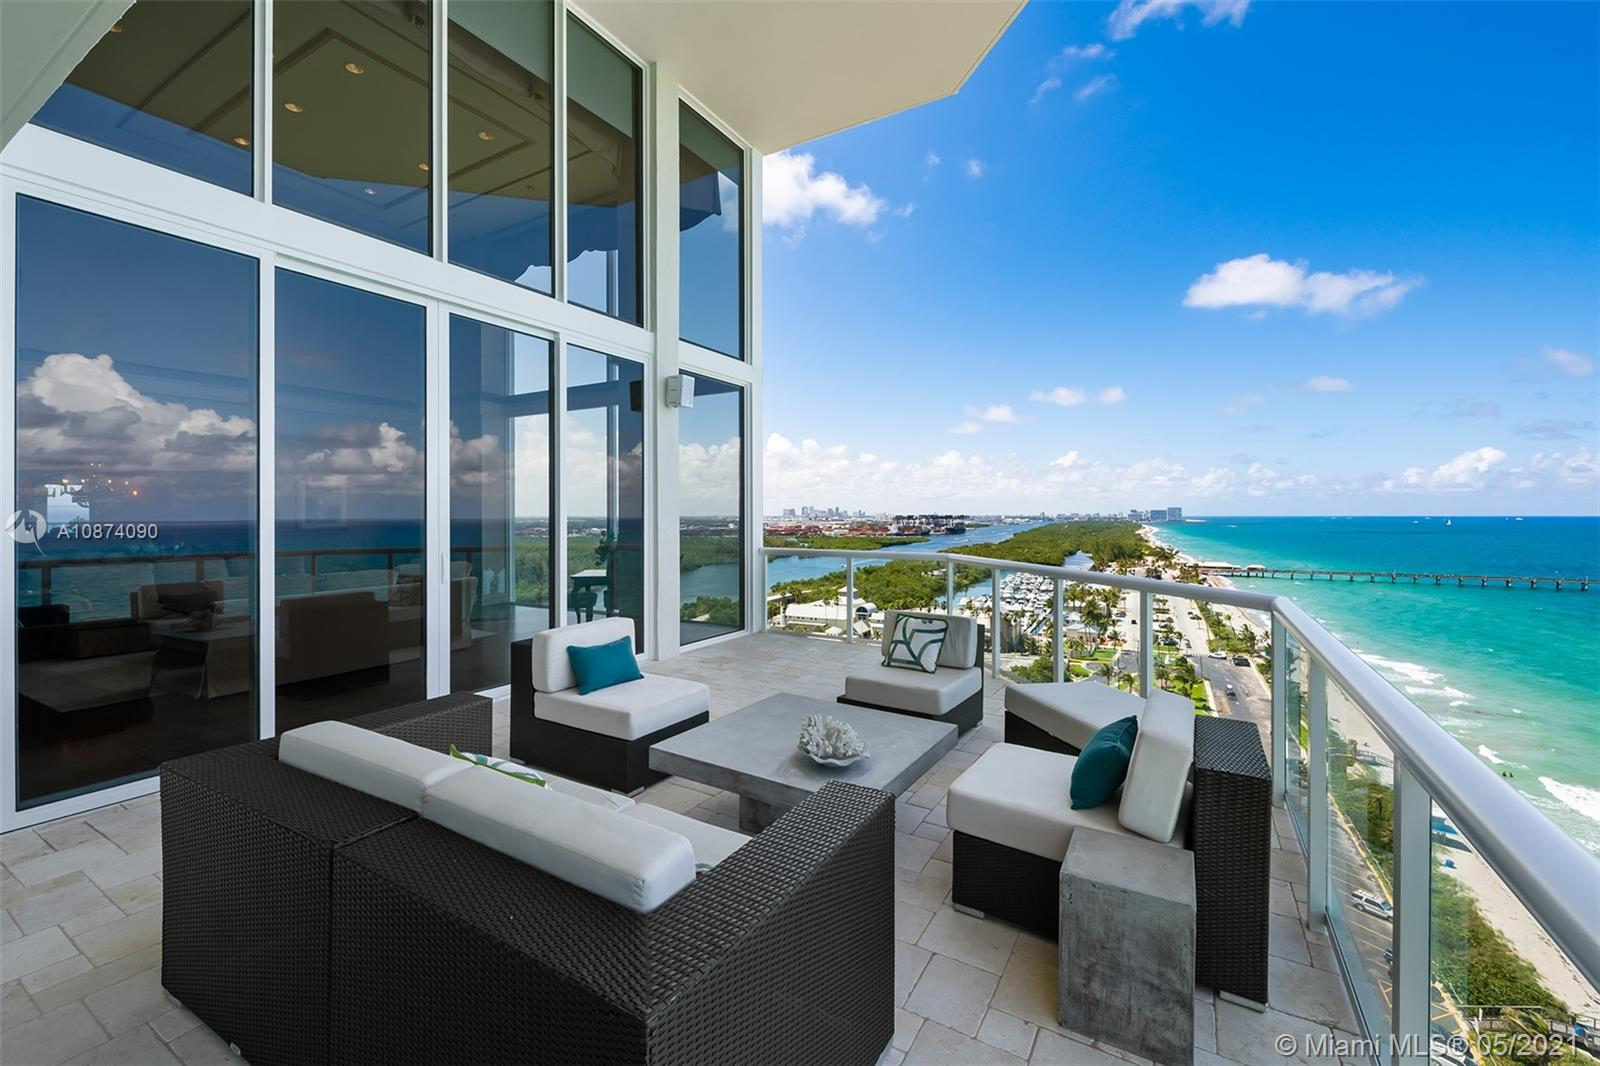 Dramatic, light-filled developer's oceanfront penthouse with a myriad of custom high-end finishes. This is a truly sophisticated home that feels like an elegant, spacious 2-story townhouse from the moment you walk off the private elevator. Expansive 20' floor-to-ceiling windows frame the panoramic ocean views in the living room which easily entertains a crowd and connects both to the formal dining room and the oceanfront terrace. Large chef's kitchen with custom touches and casual dining space. Everything is inside to live an unparalleled lifestyle: spacious master suite, office, private gym, sauna, media room and library.  Luxury amenities: pools, tennis, fitness club, private beach cabanas, valet and much more. Located between Miami and FTL and is just a 10 min drive to the airport.